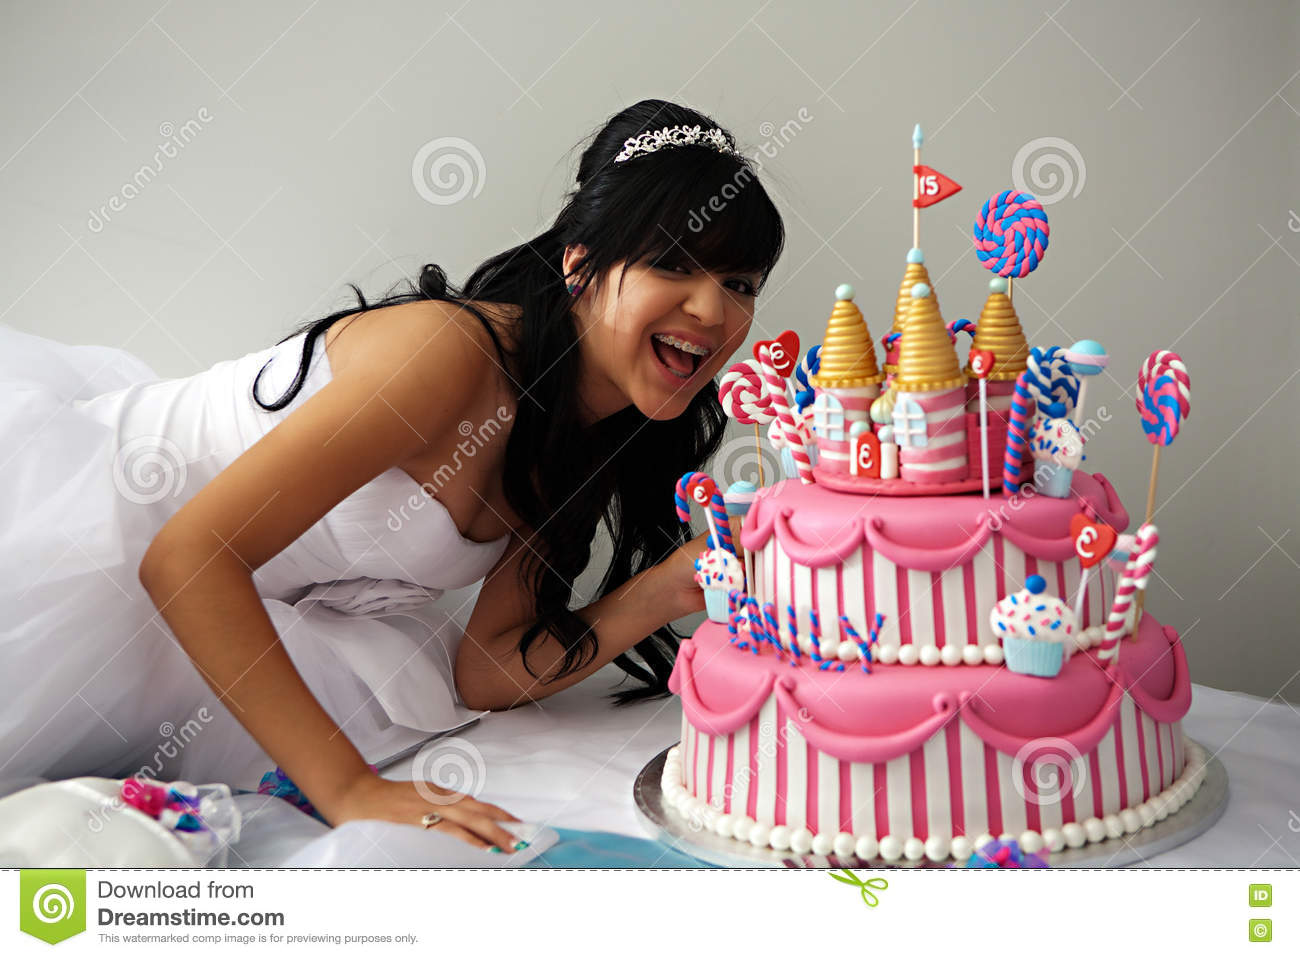 15th birthday cake quinceanera birthday cake stock image image of iced 1025